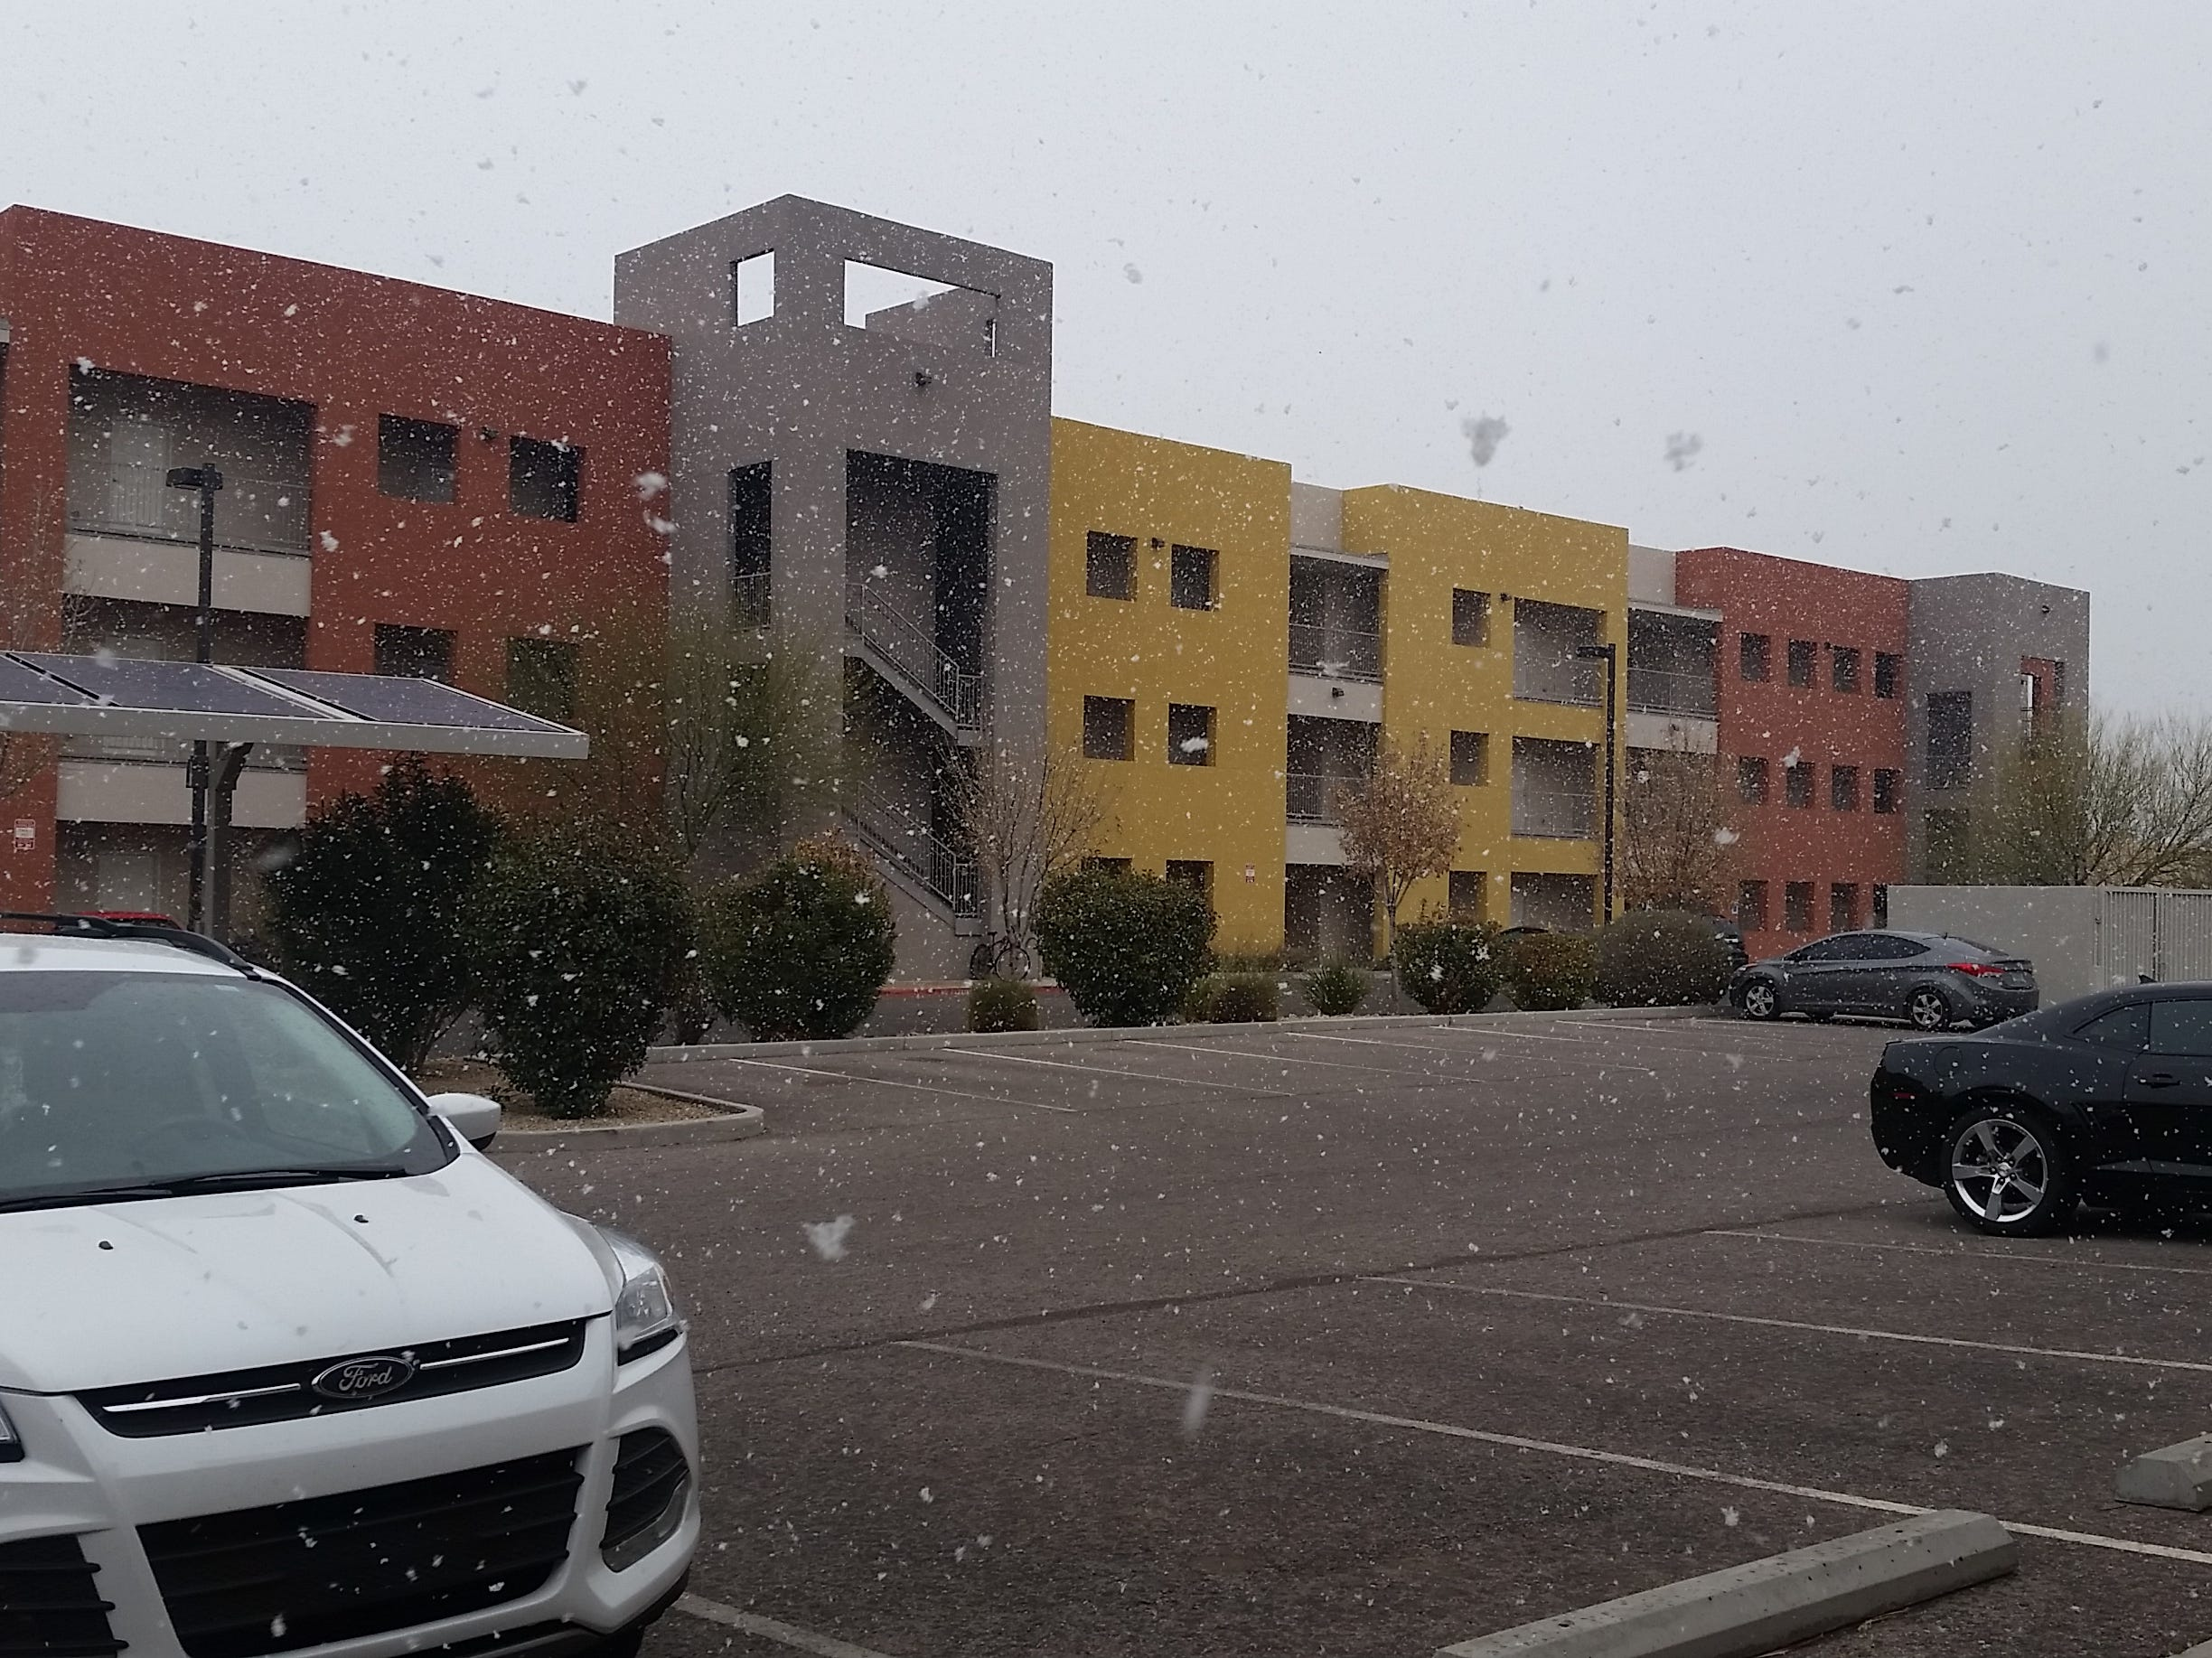 Snowflakes fall near the Las Cruces Sun-News building in downtown Las Cruces the morning of  Tuesday, Feb. 19, 2019.